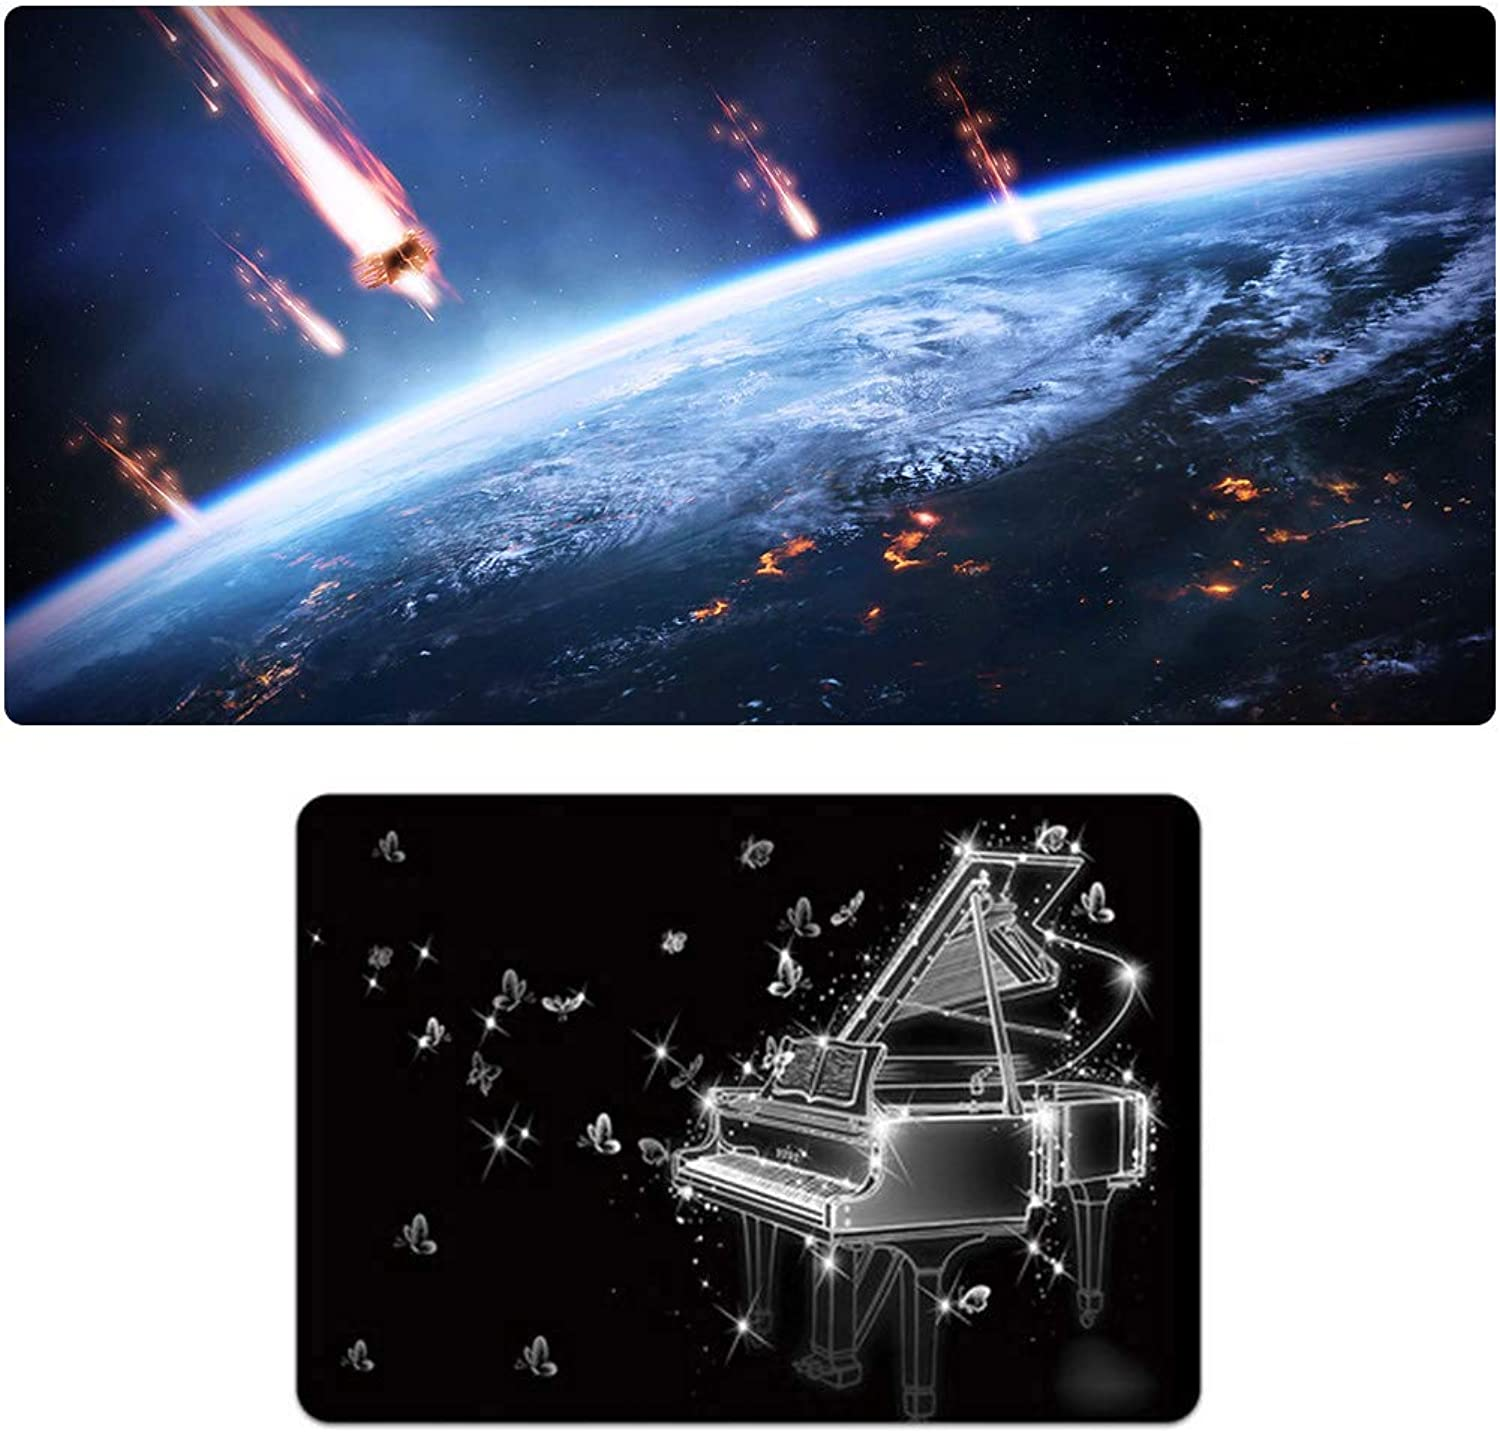 Super Mouse Pad + Small Game Mouse Pad Set, Esports Peripheral